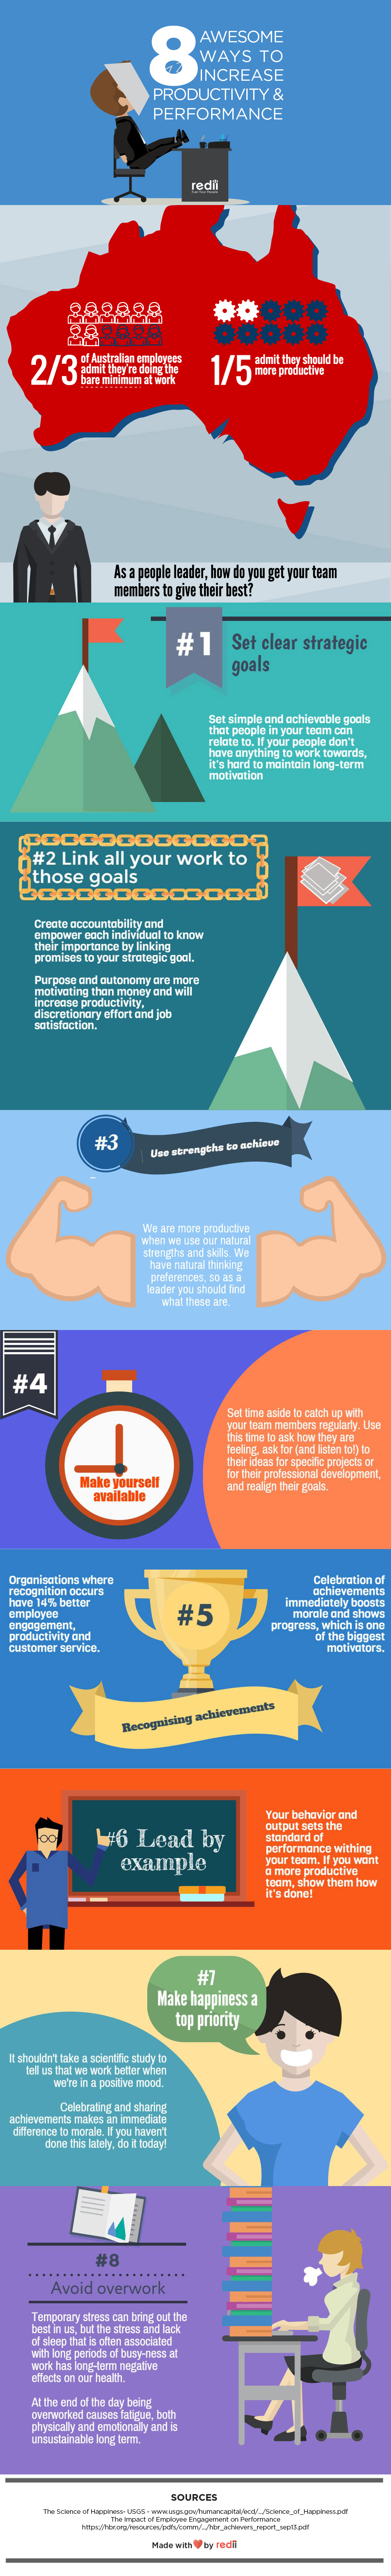 Infographic: 8 awesome ways to increase your productivity and performance at work